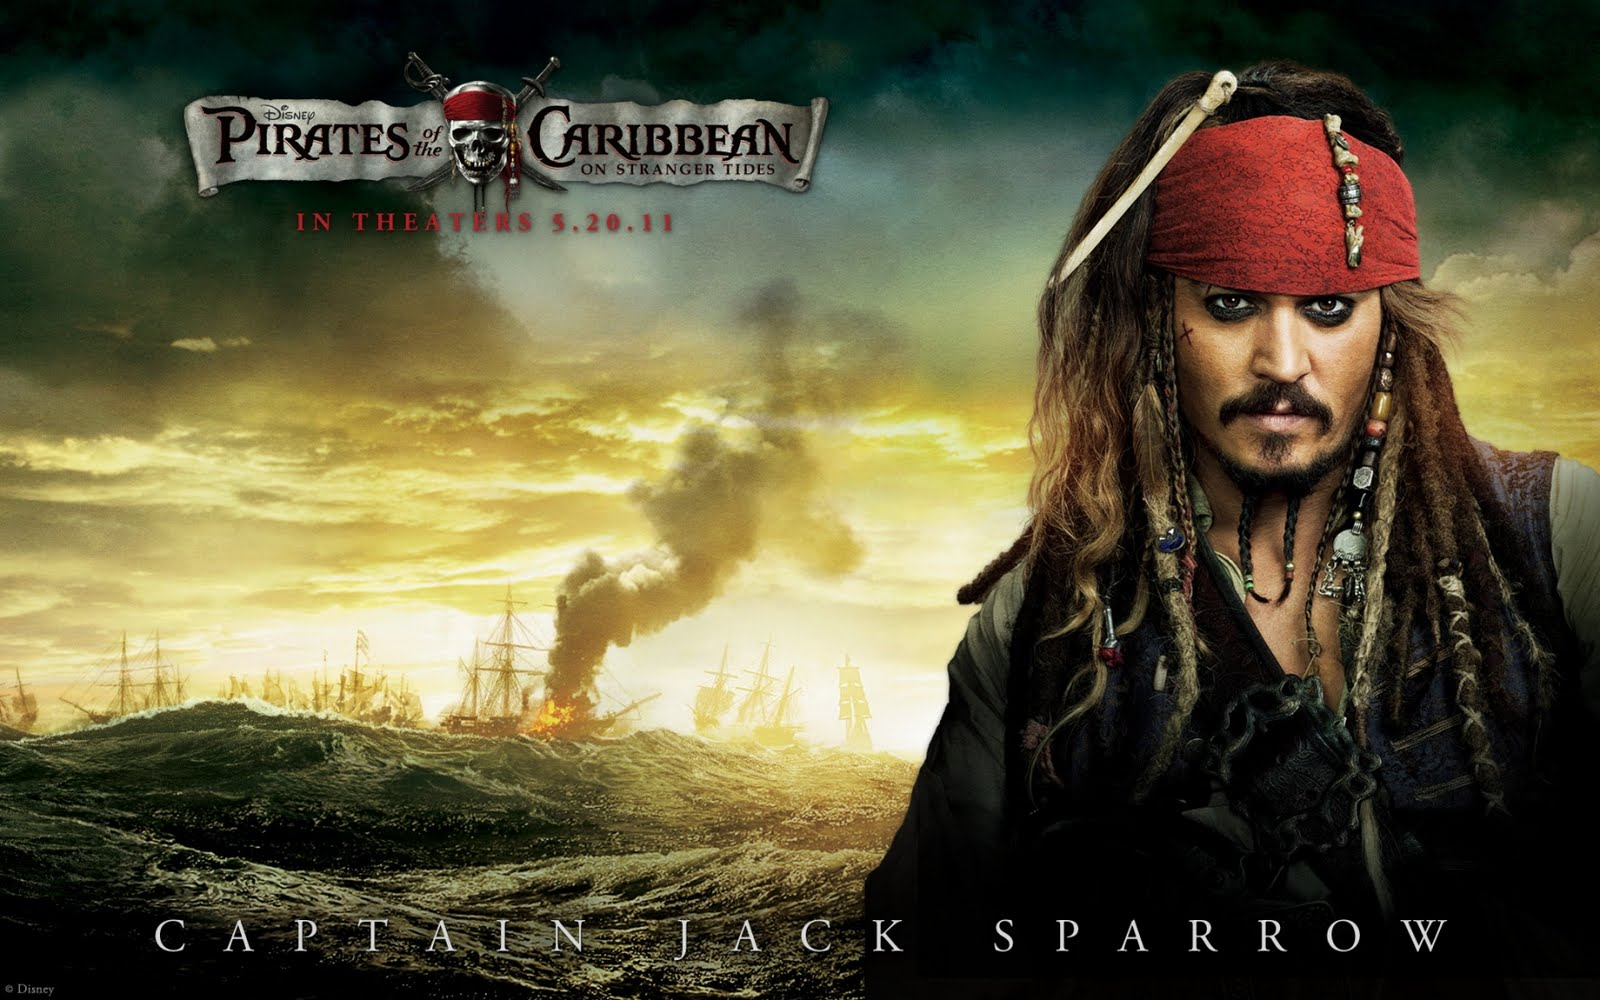 http://2.bp.blogspot.com/-7BQGorge6cA/TfYNh48sBfI/AAAAAAAAFz8/Syug1NQr0HY/s1600/Pirates+of+the+Caribbean+On+Stranger+Tides+Wallpaper%252C+Movie+Wallpaper+6.jpg